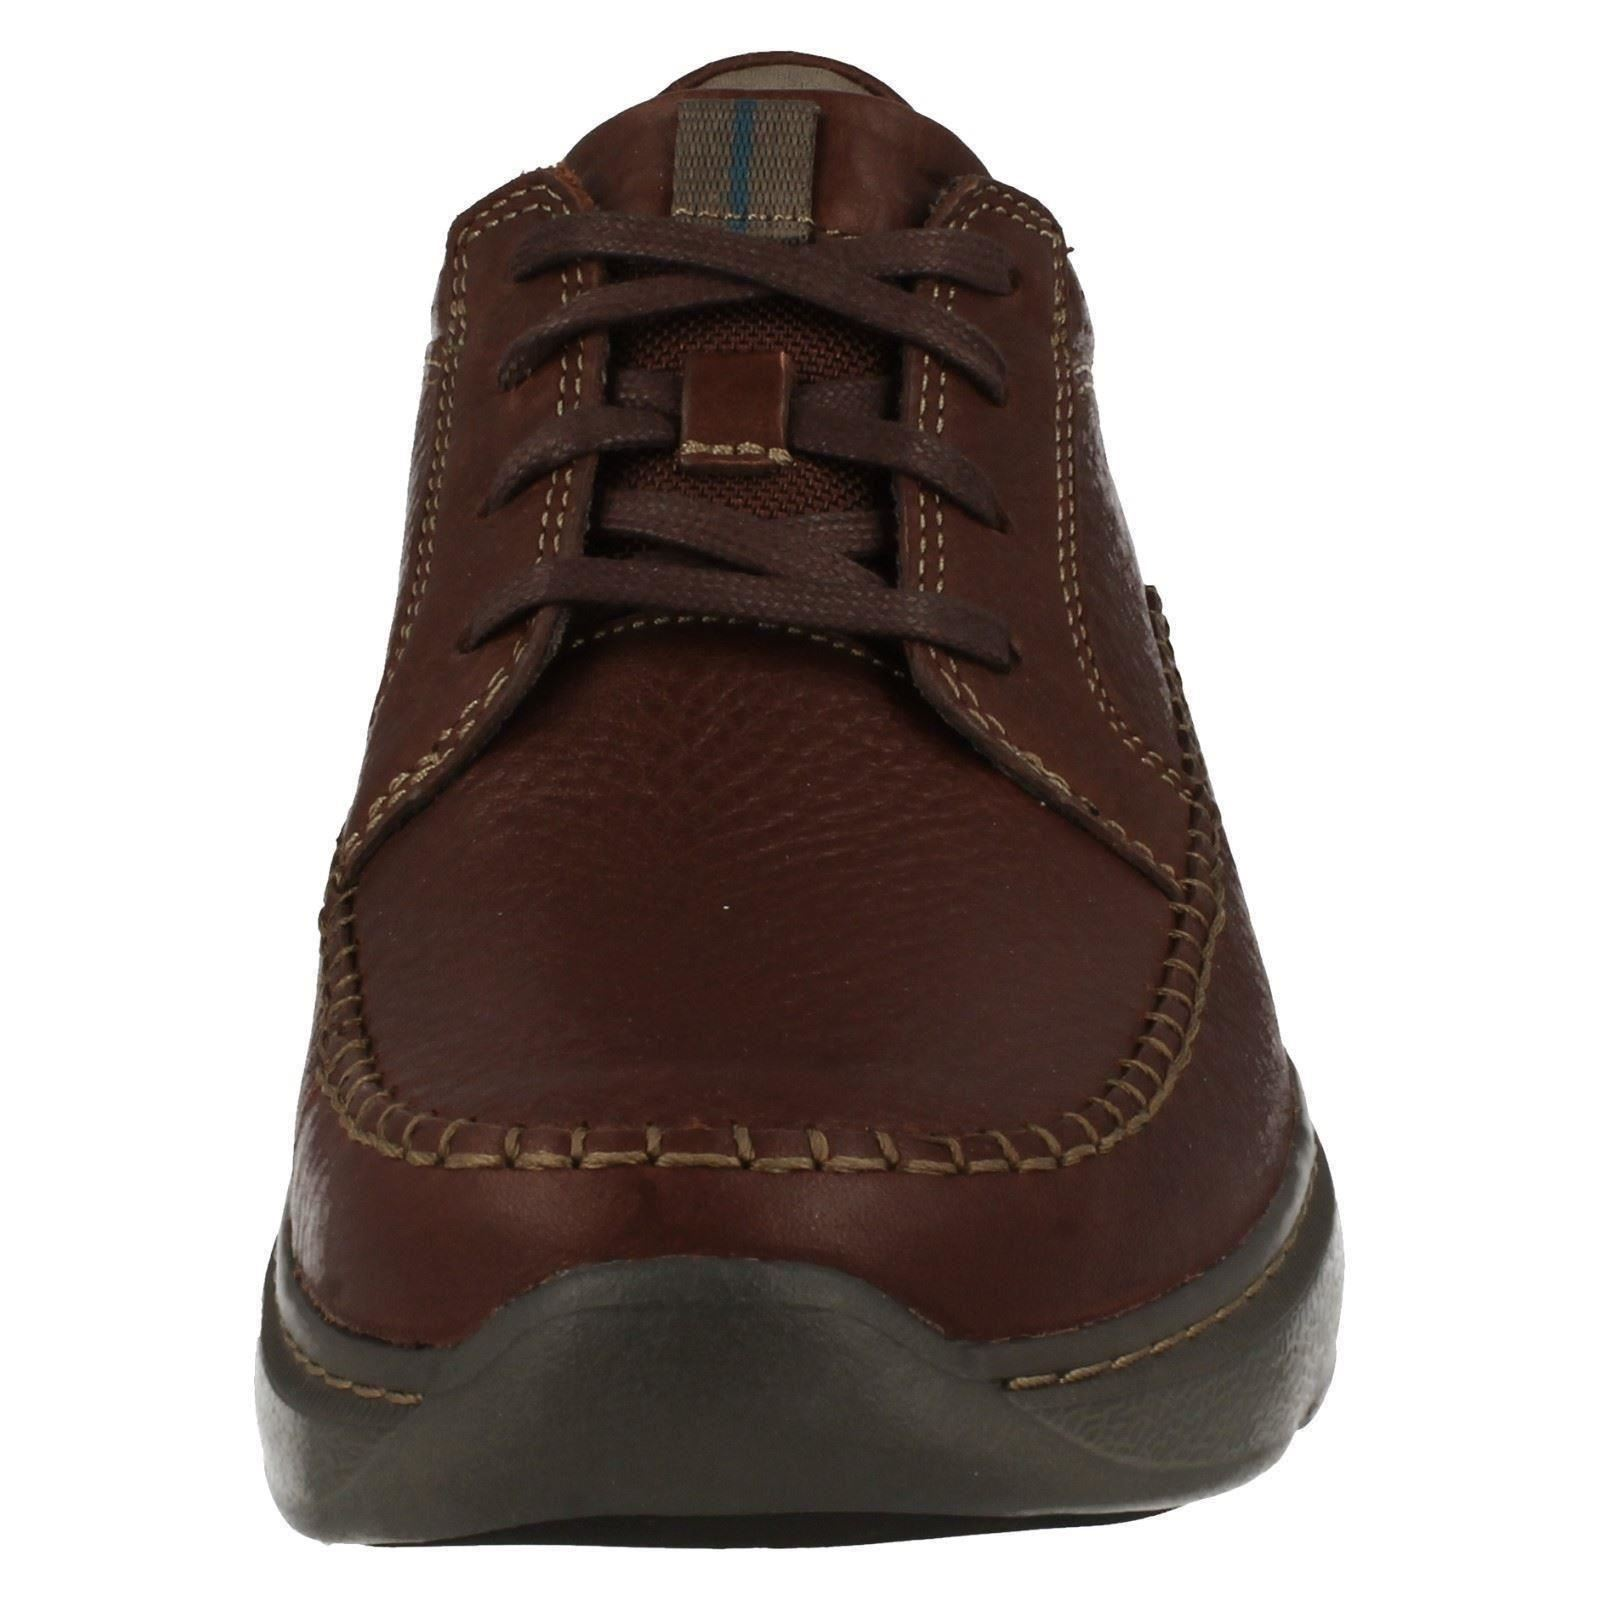 hombres Clarks Casual Lace Up Zapatos The The The Style - Charton Vibe - W 99c29d